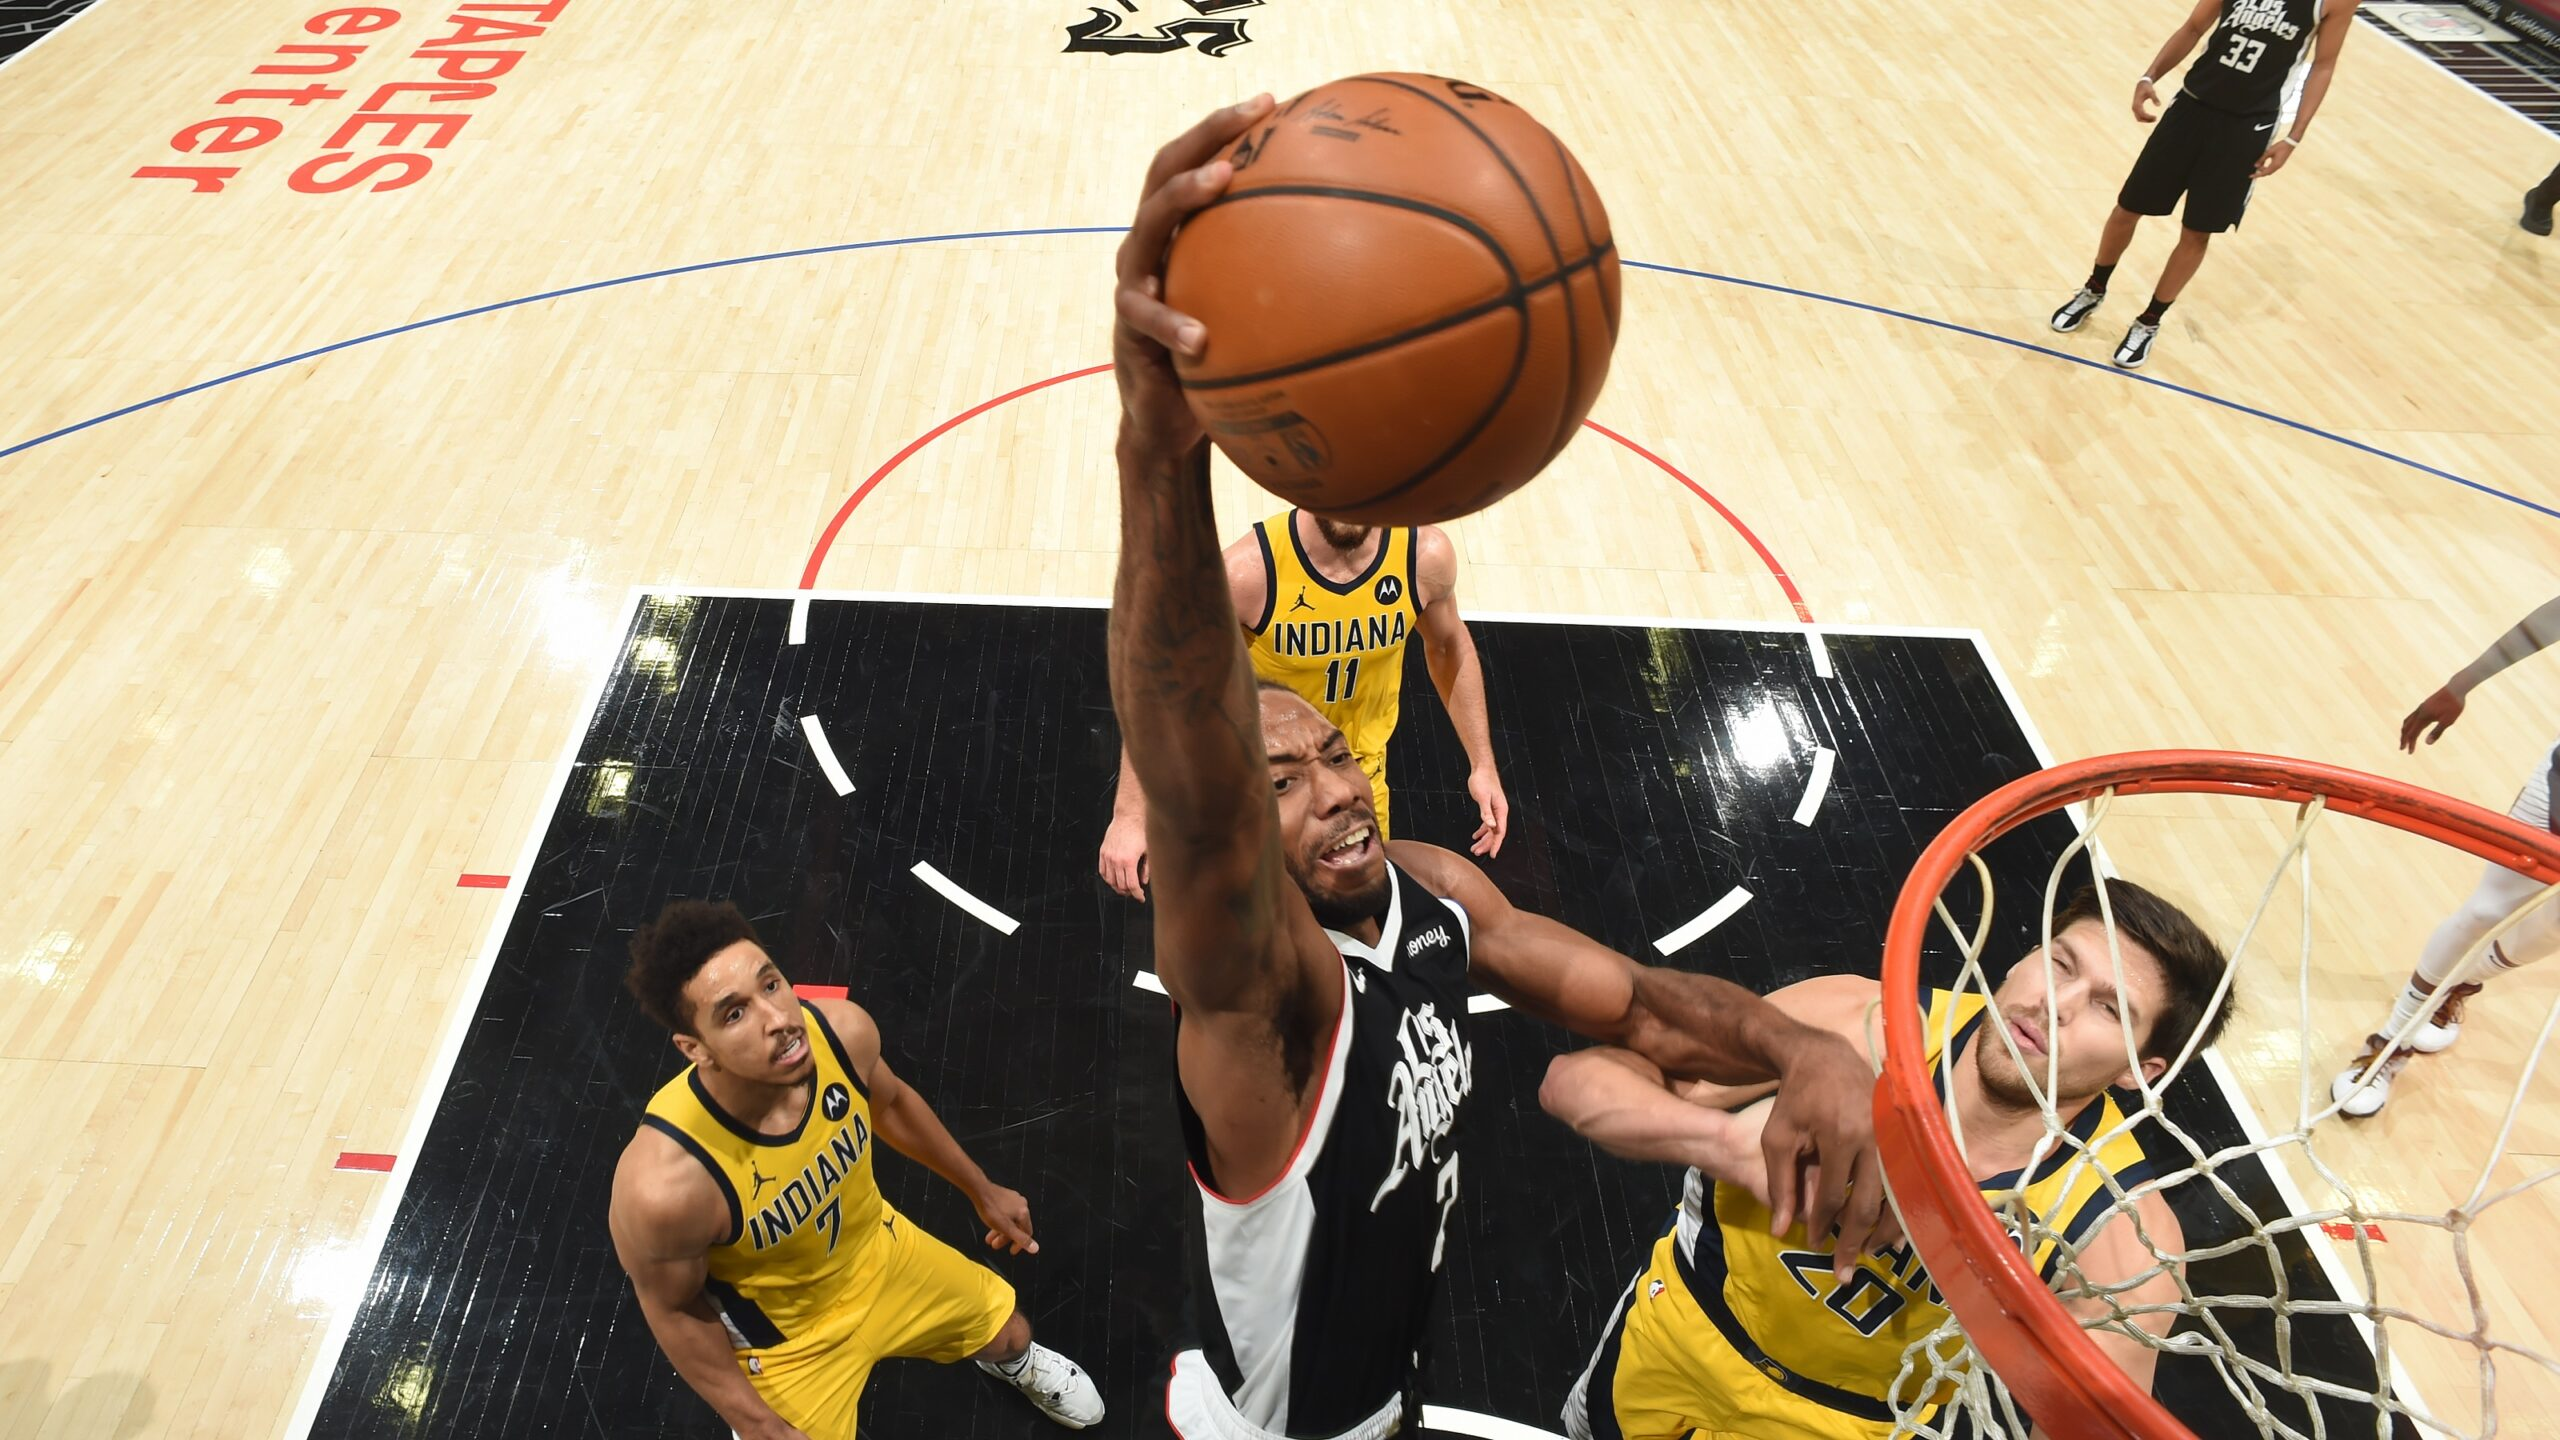 Clippers Overpower Pacers With Latest Onslaught